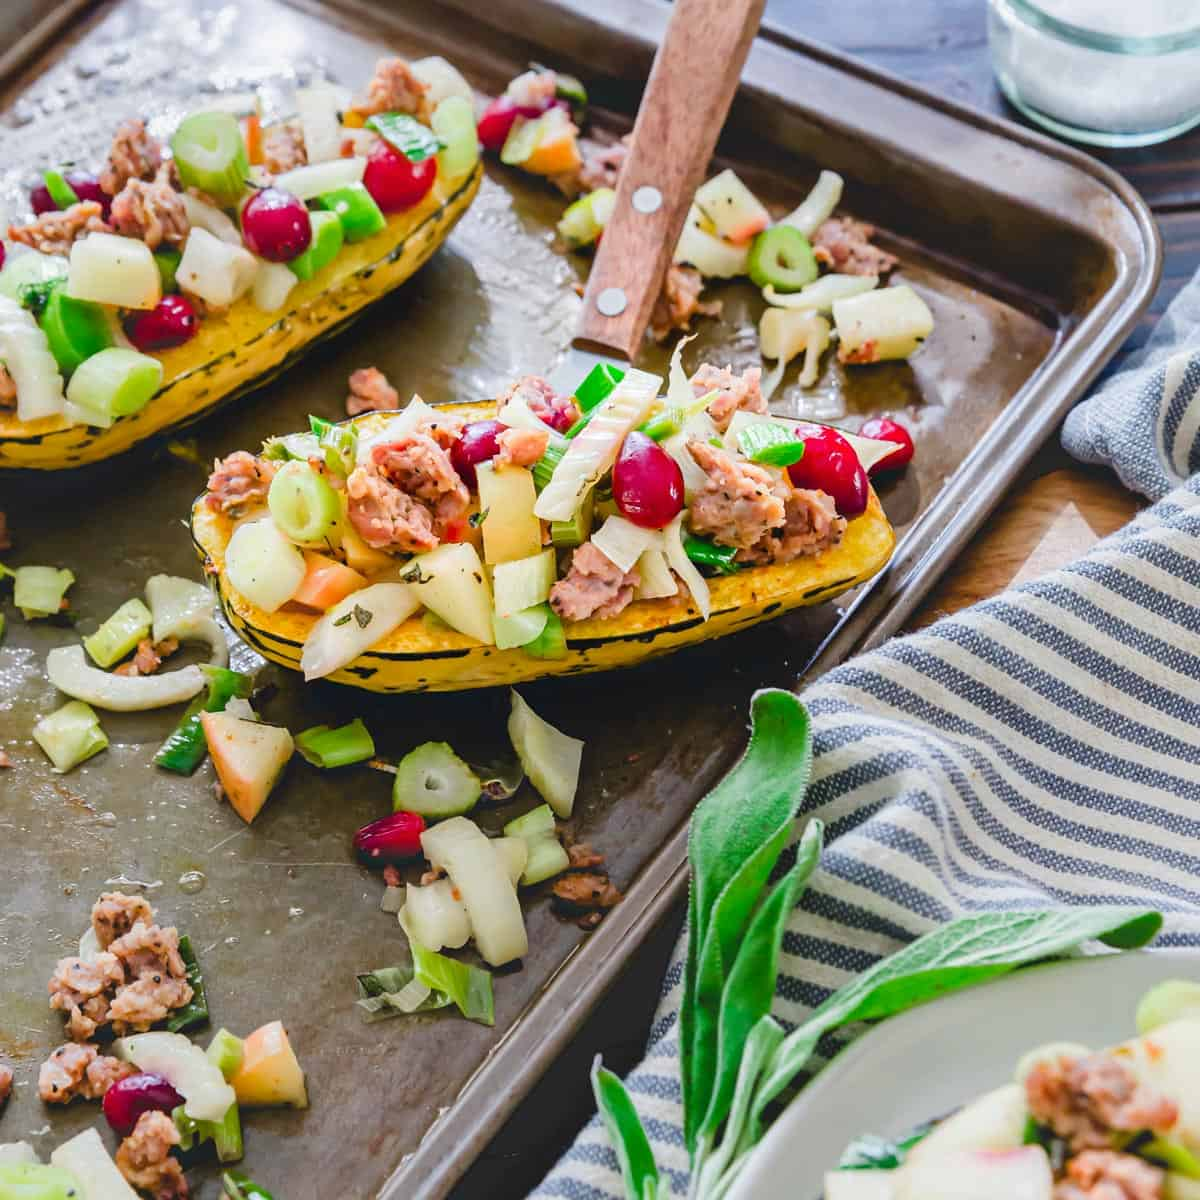 Roasted stuffed delicata squash bursting with savory and sweet fall flavors that complement the tender, slightly sweet squash perfectly.